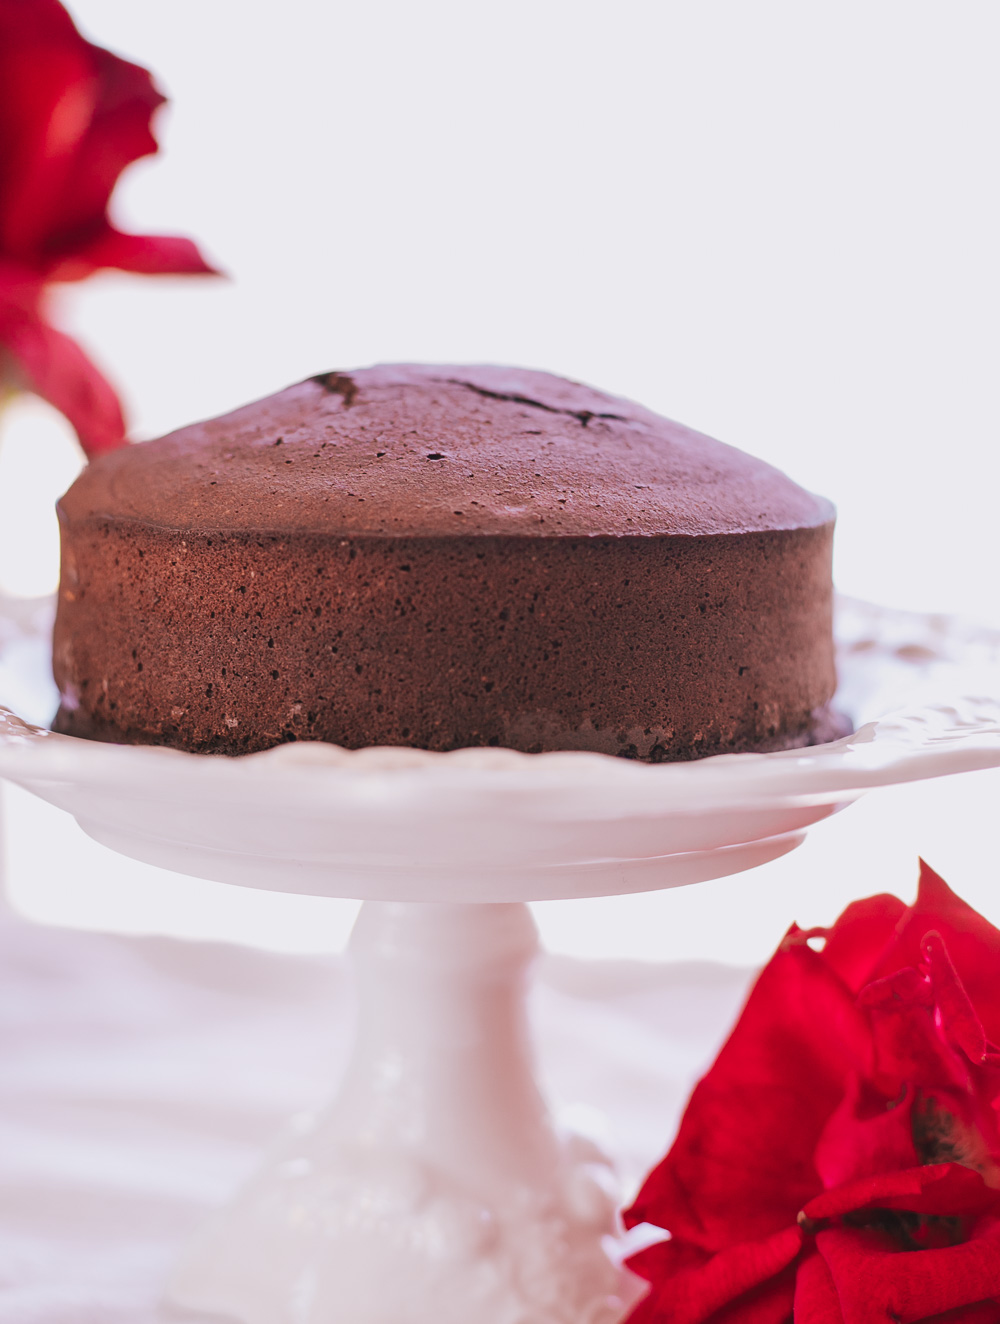 Healthy Low-Calorie Chocolate Cake